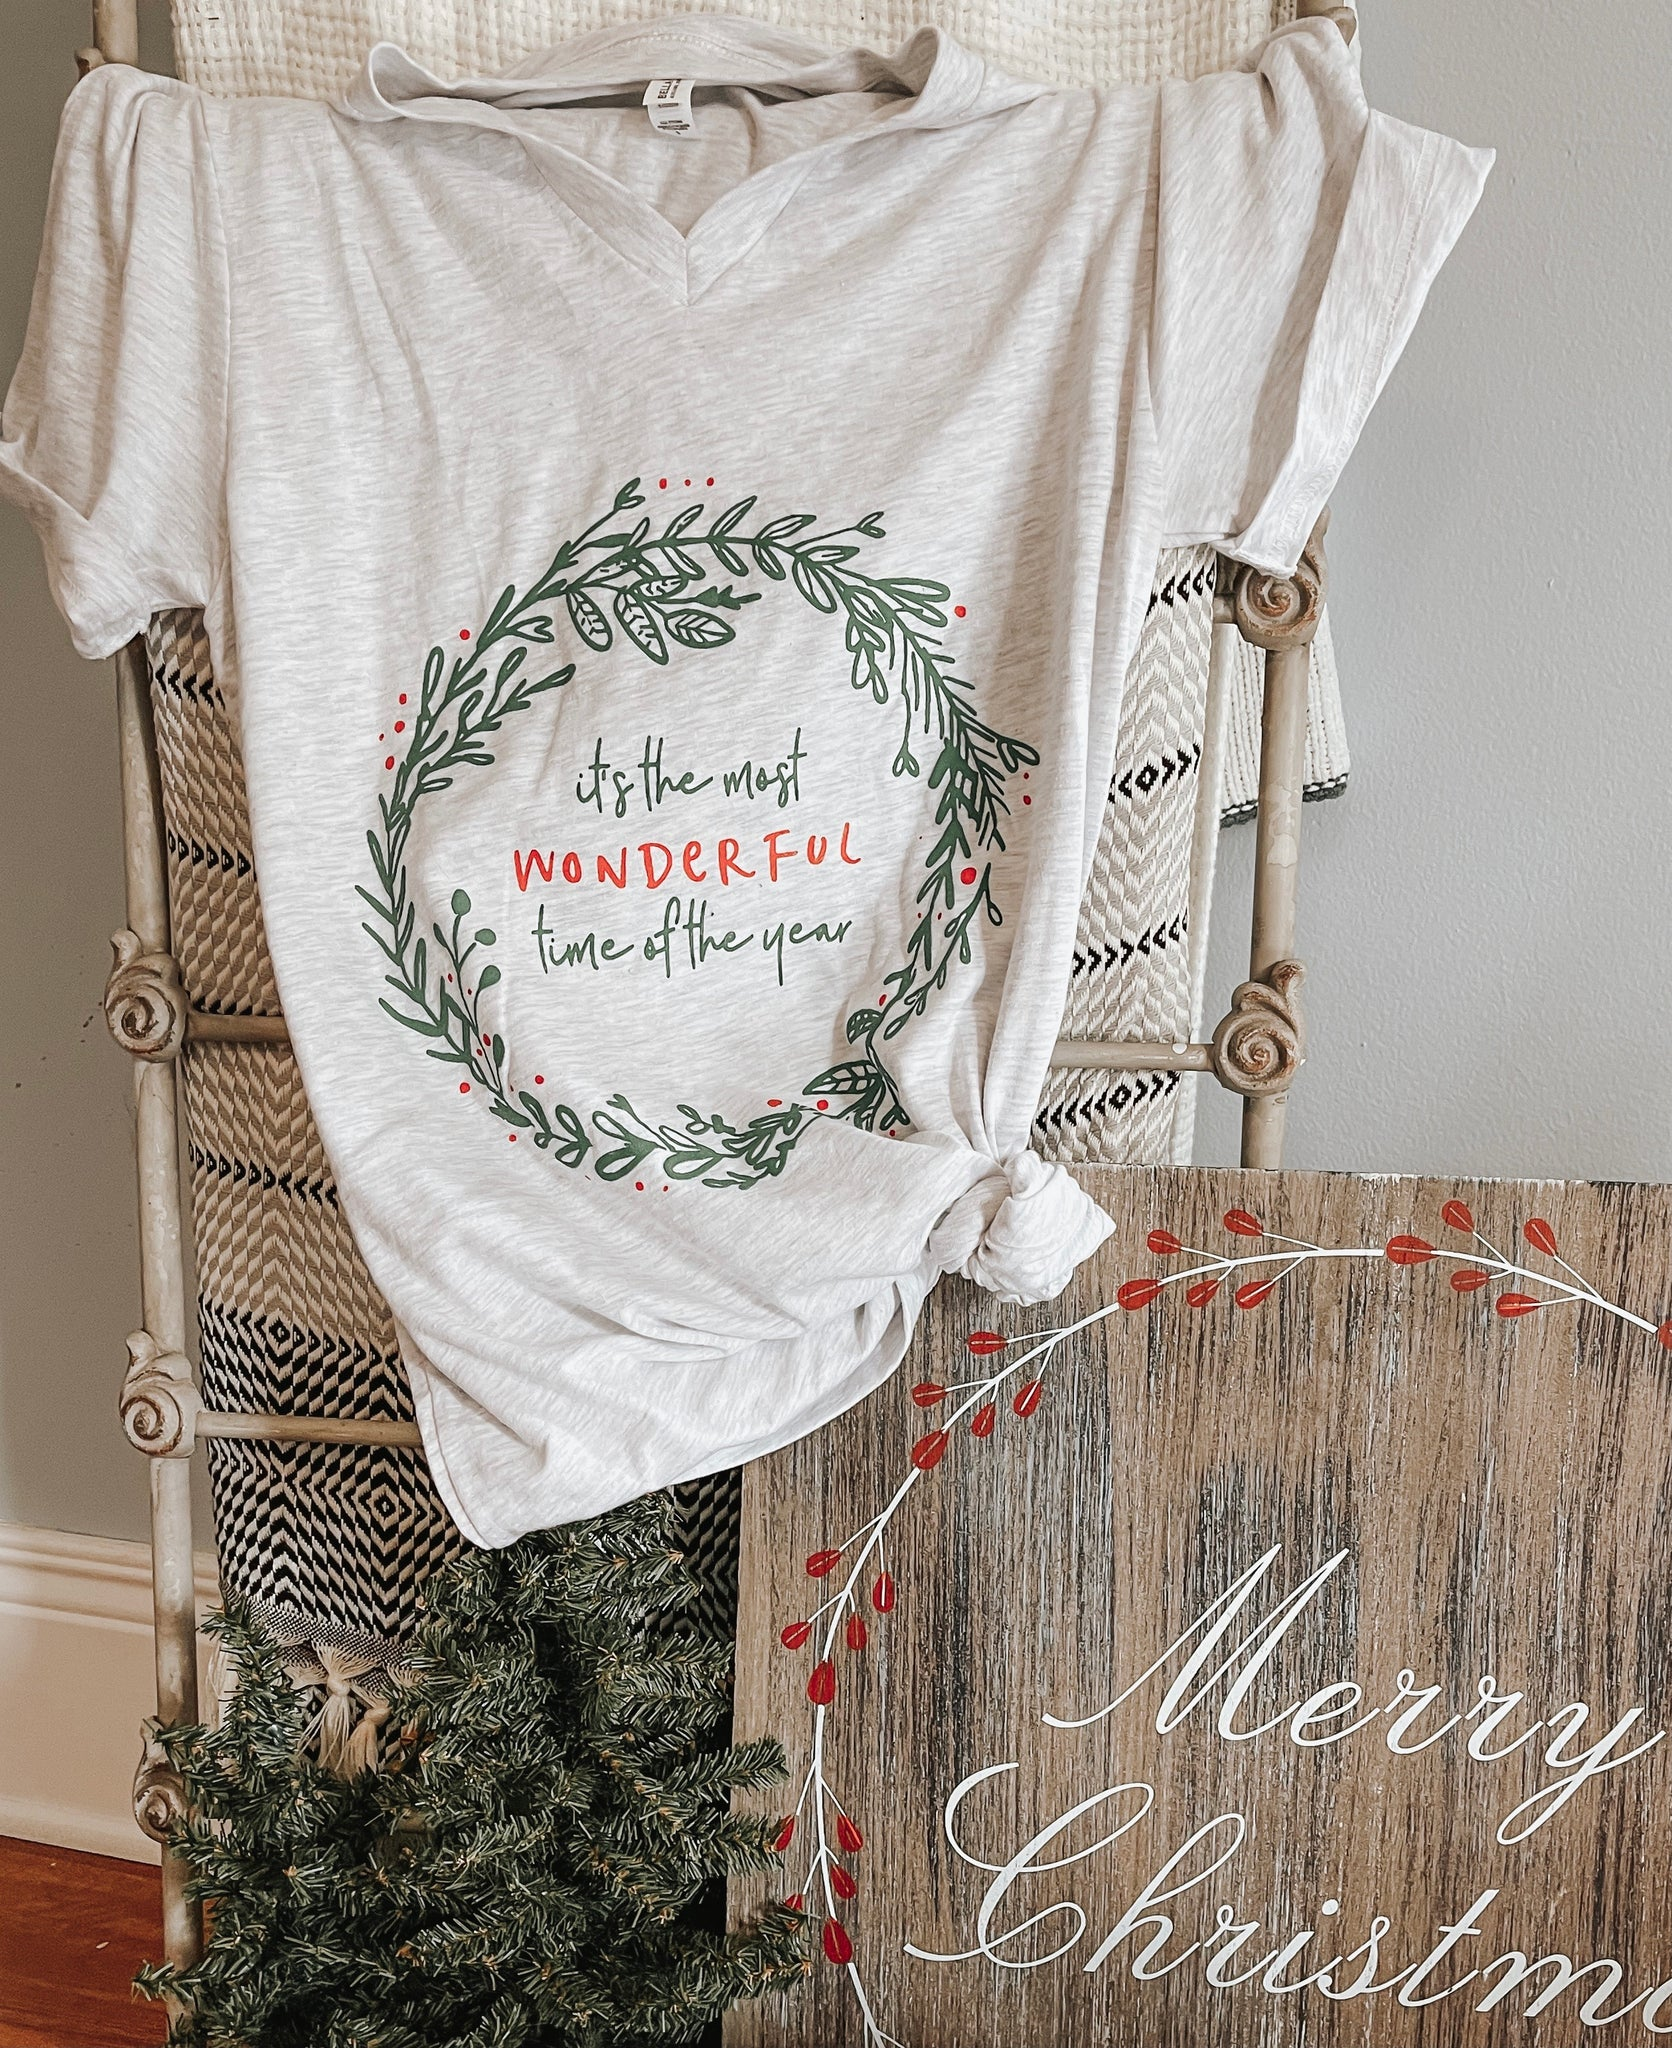 Most Wonderful Time of the Year- Short-Sleeve Shirt - Christmas